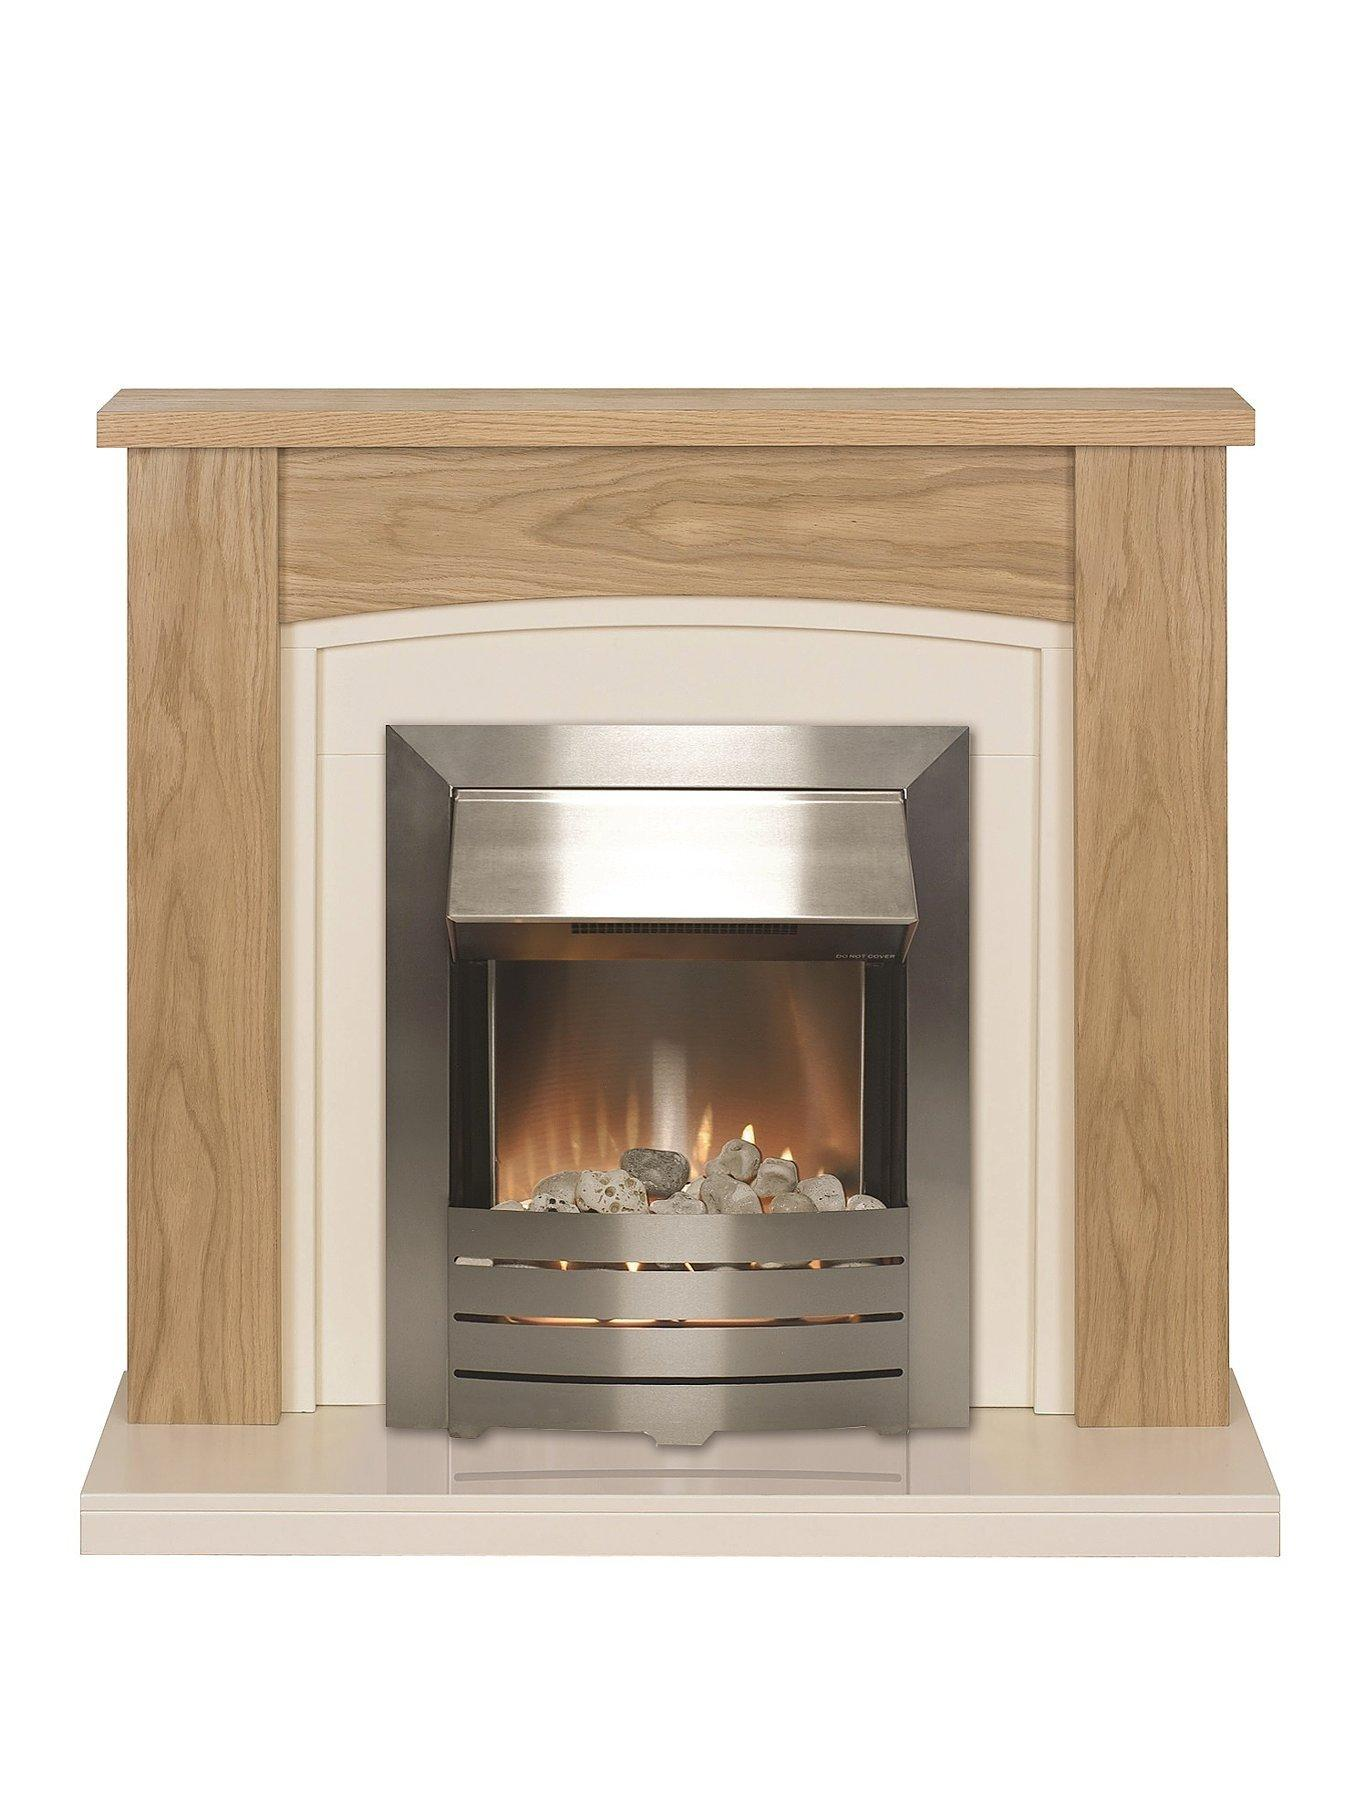 Compare prices for Adam Fire Surrounds Chiltern Electric Fireplace Suite